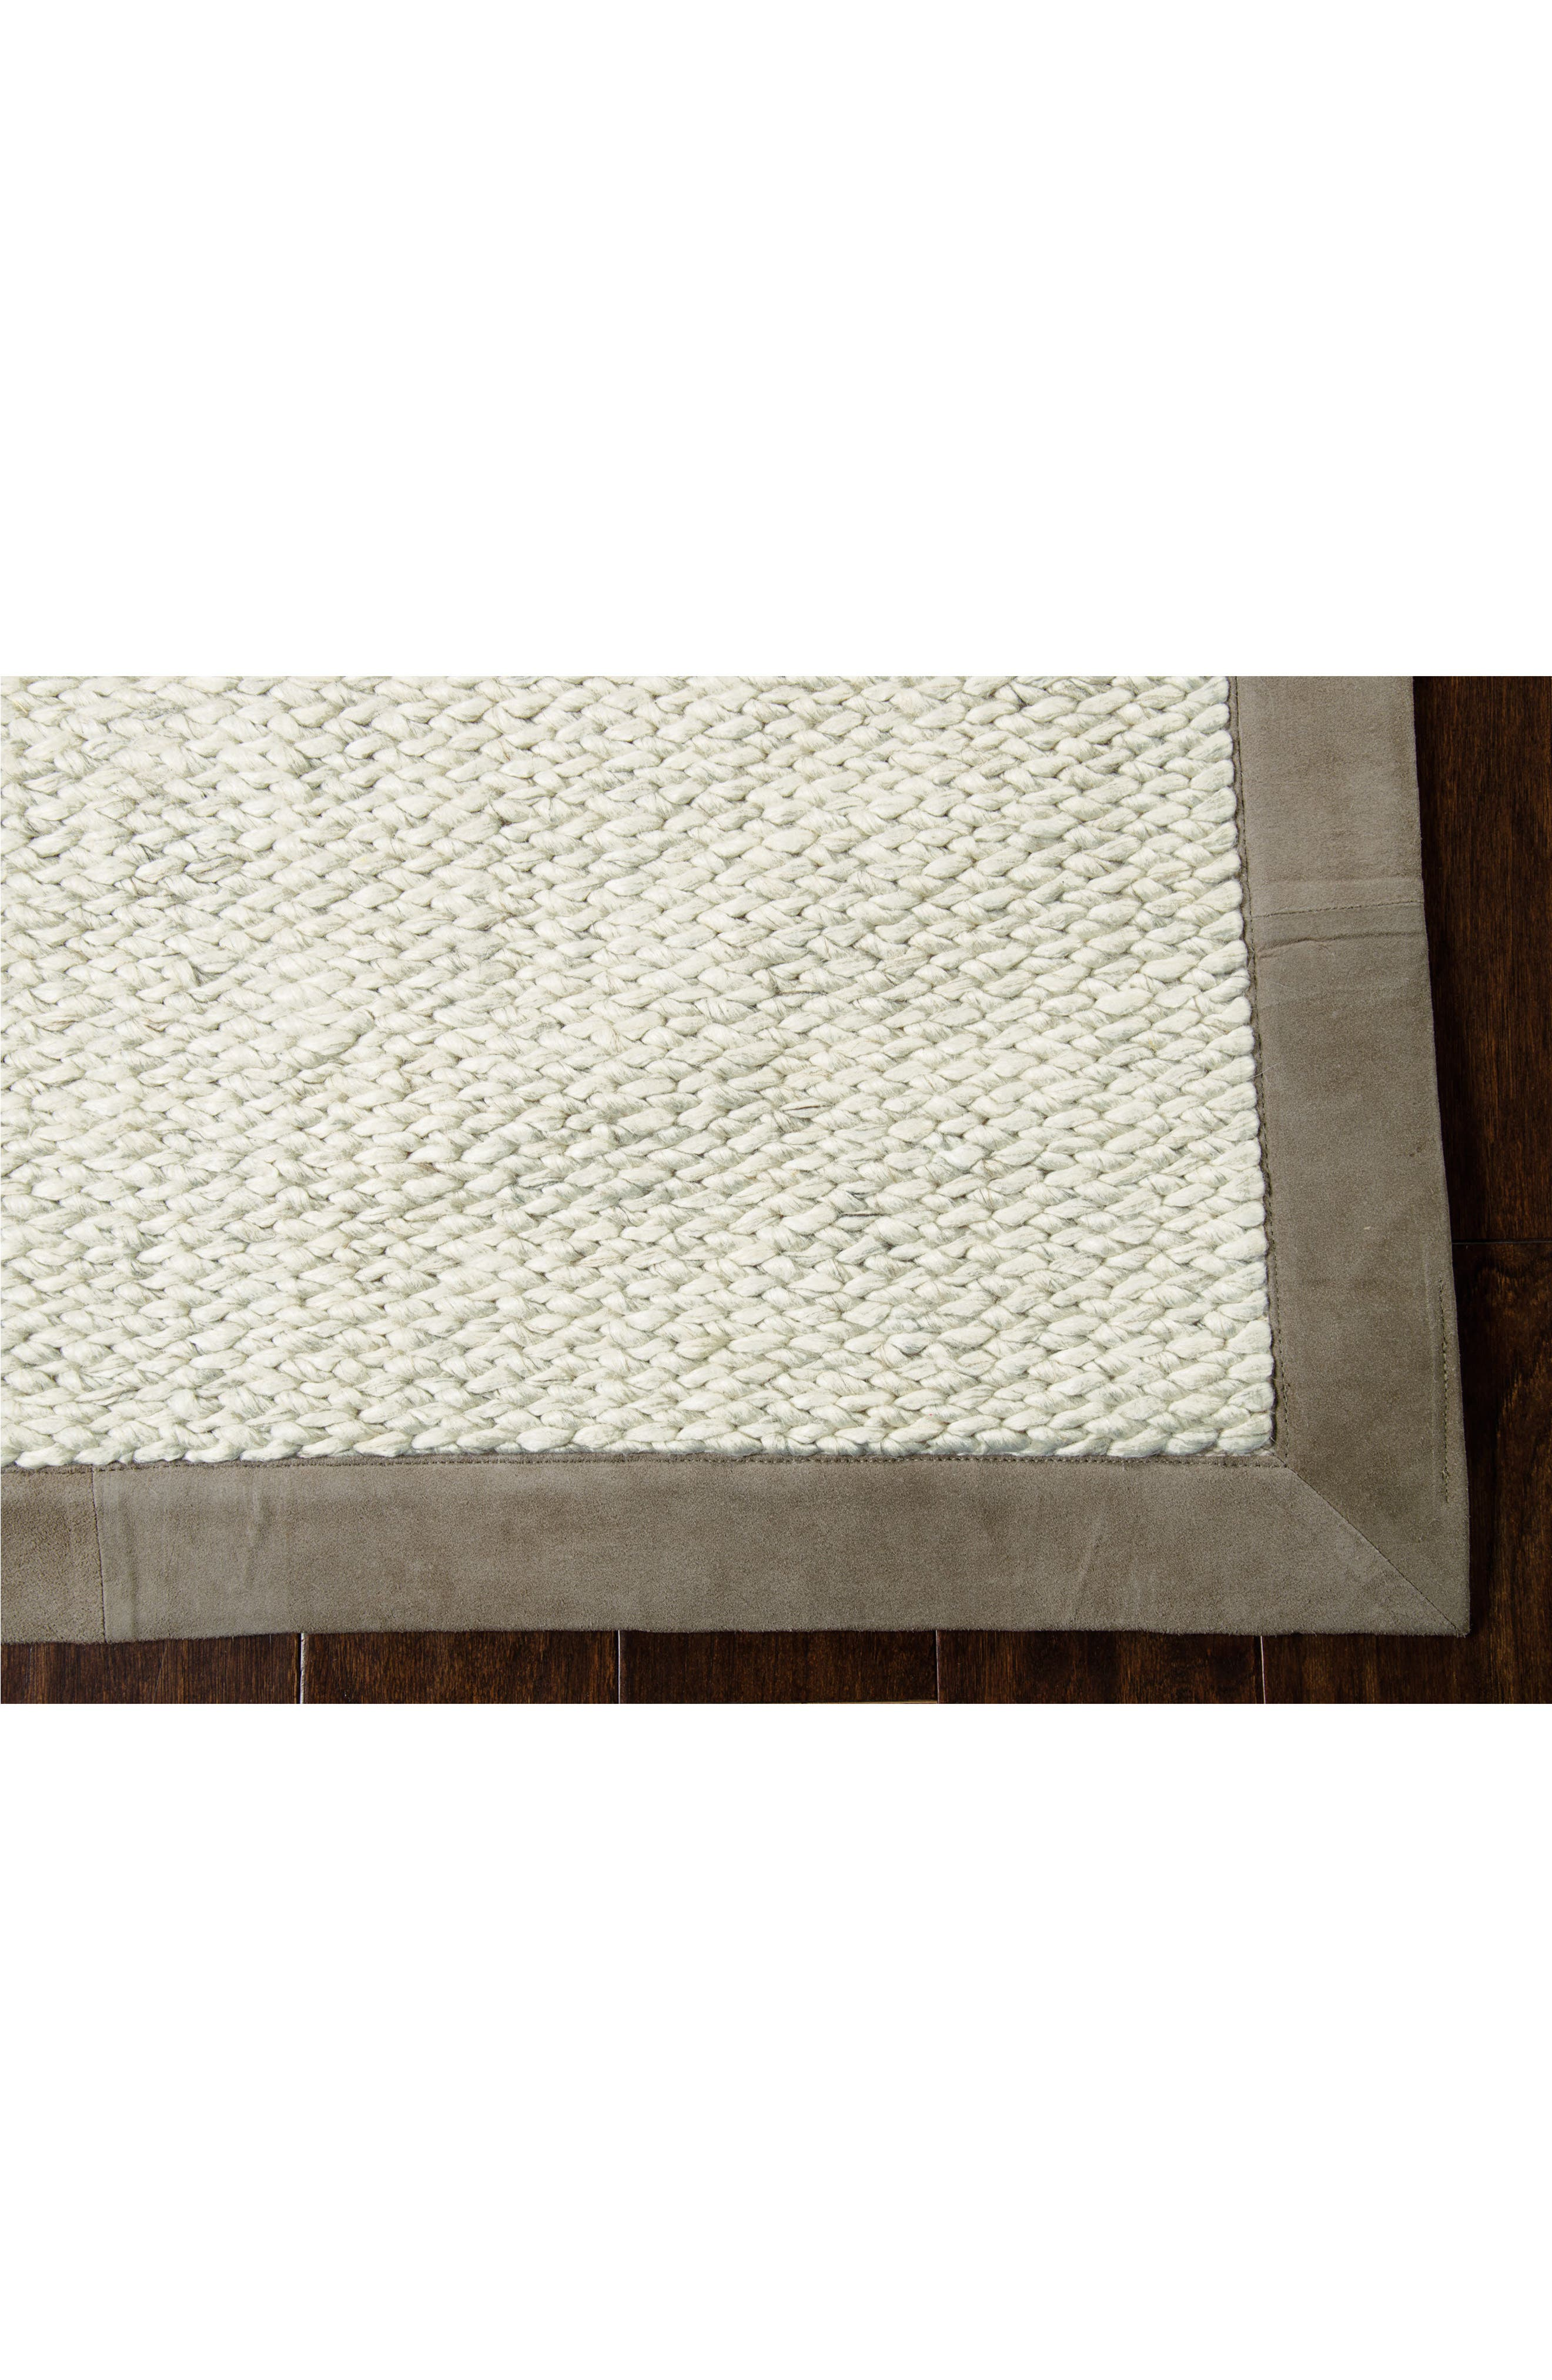 CK Collection Lucia Area Rug,                             Alternate thumbnail 2, color,                             120